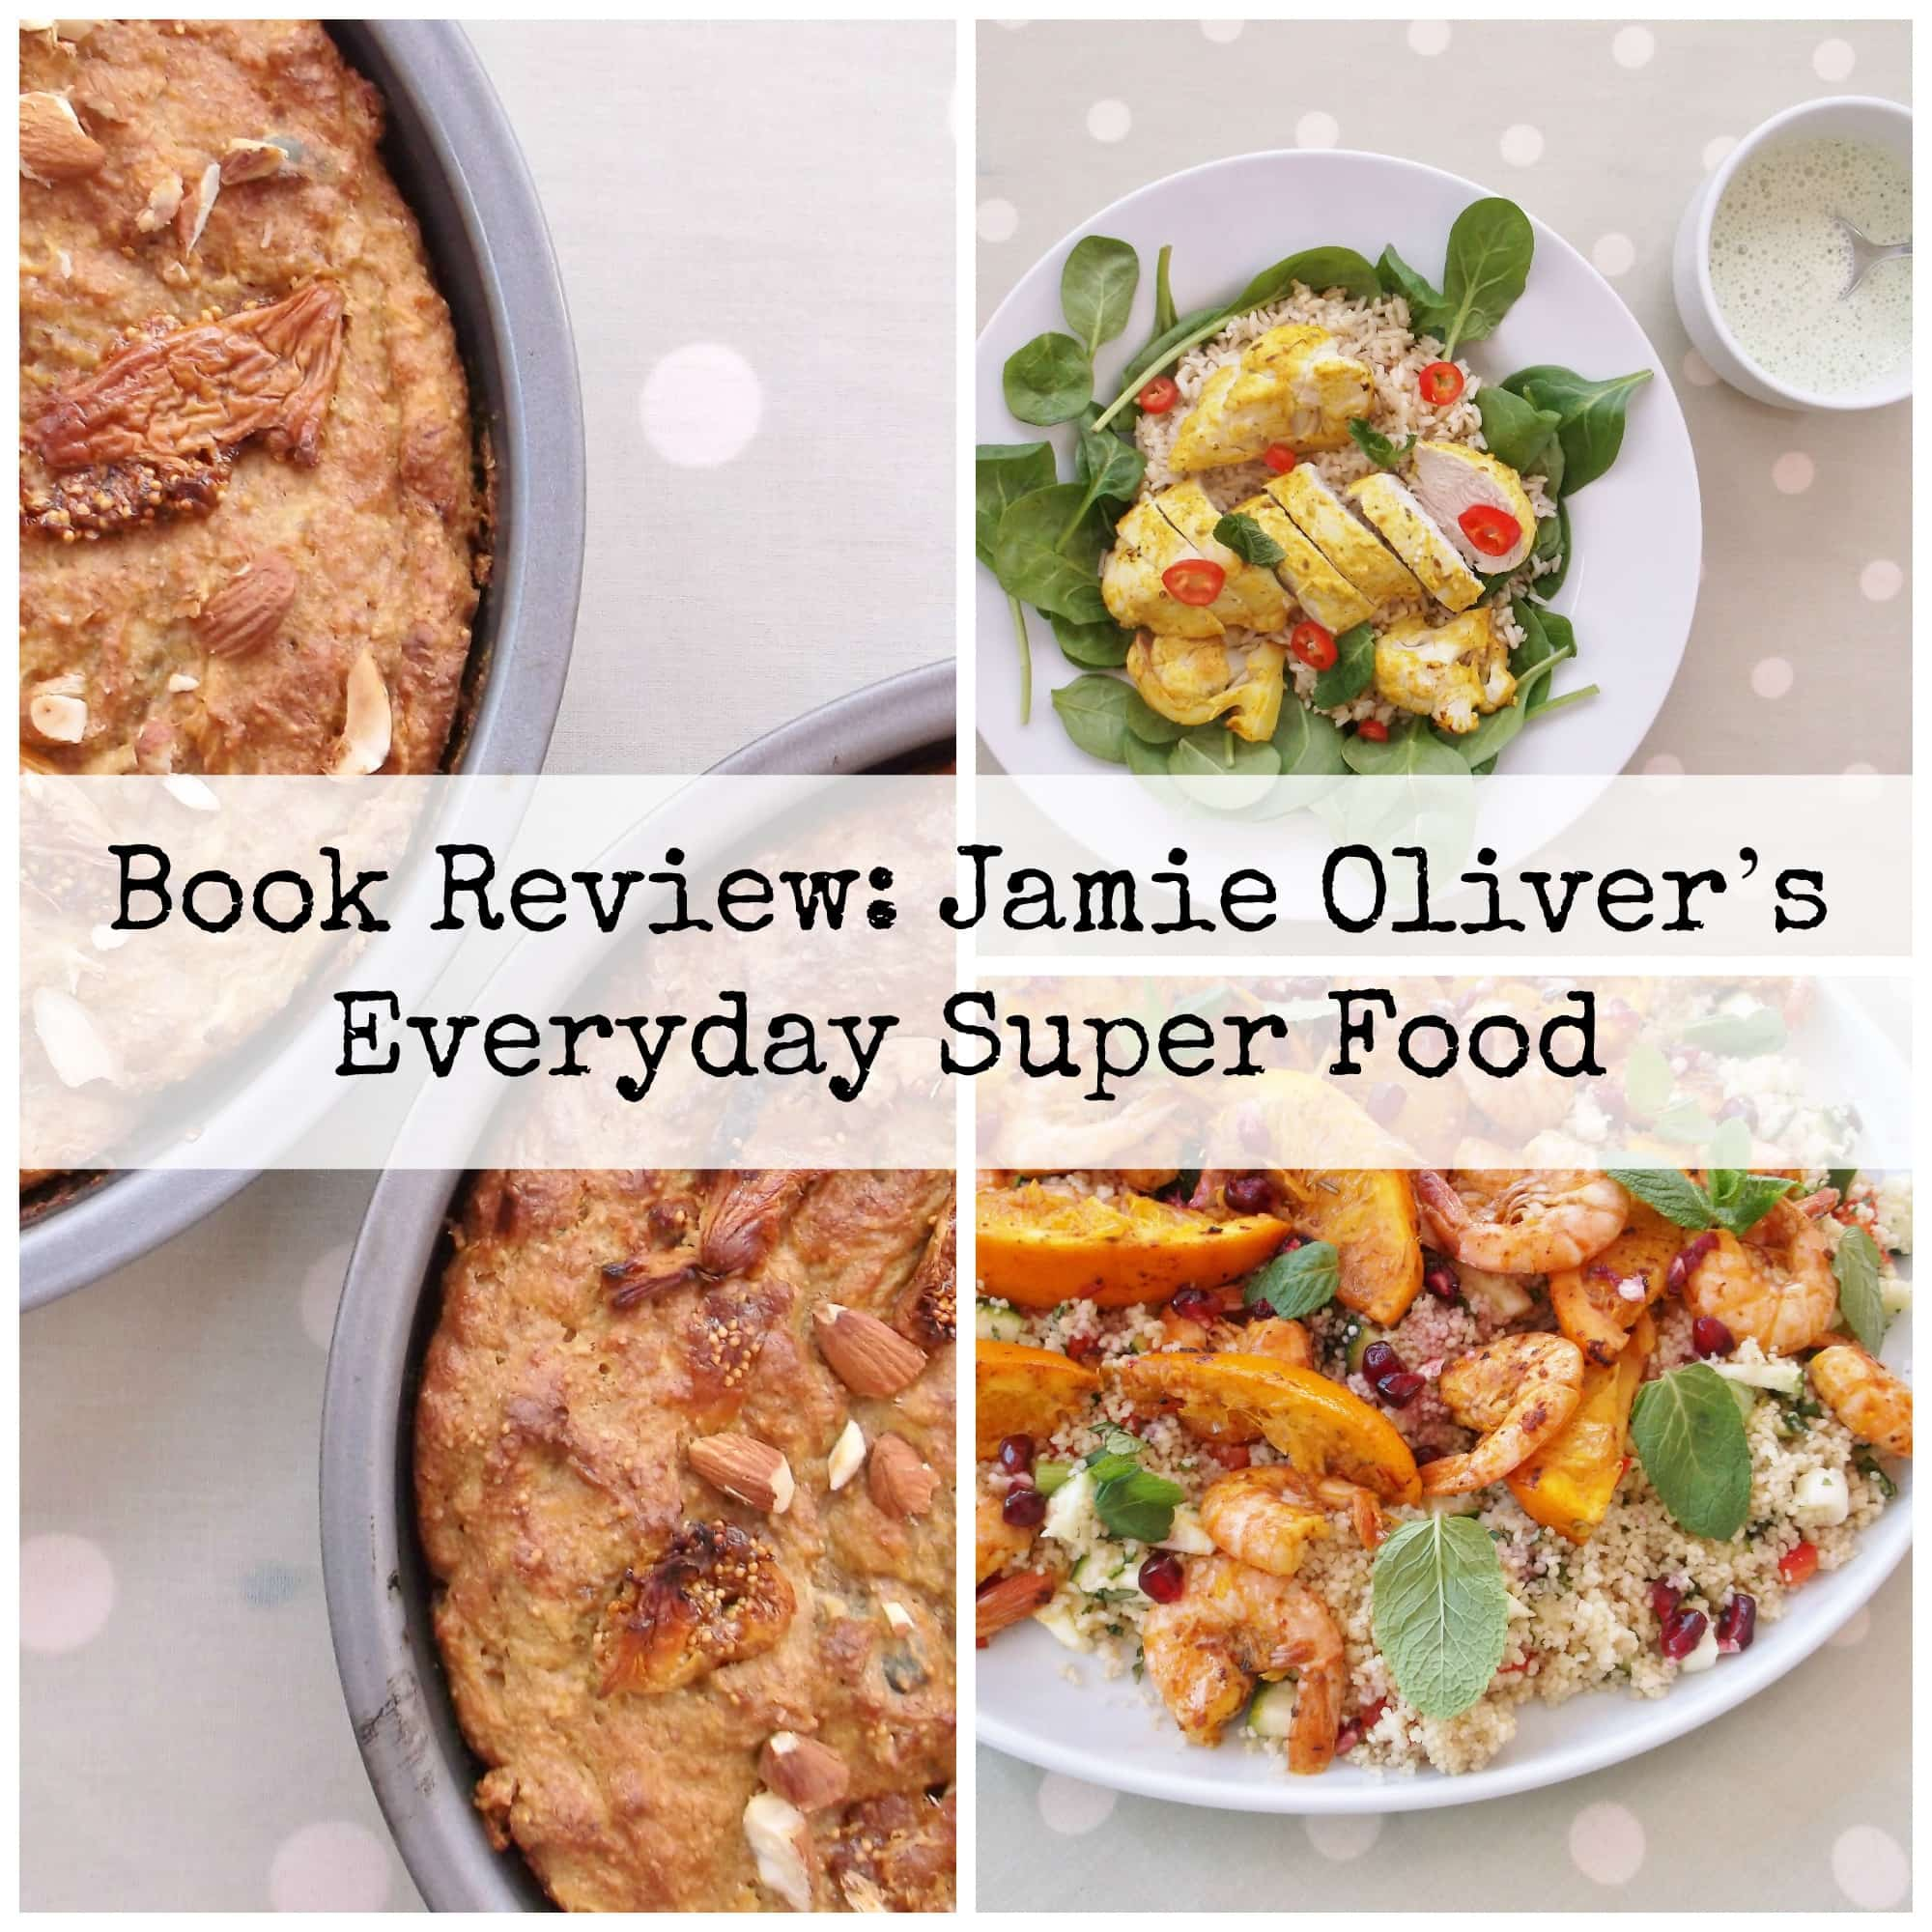 Review of jamie olivers everyday super food easy peasy foodie jamie olivers everyday super food book review forumfinder